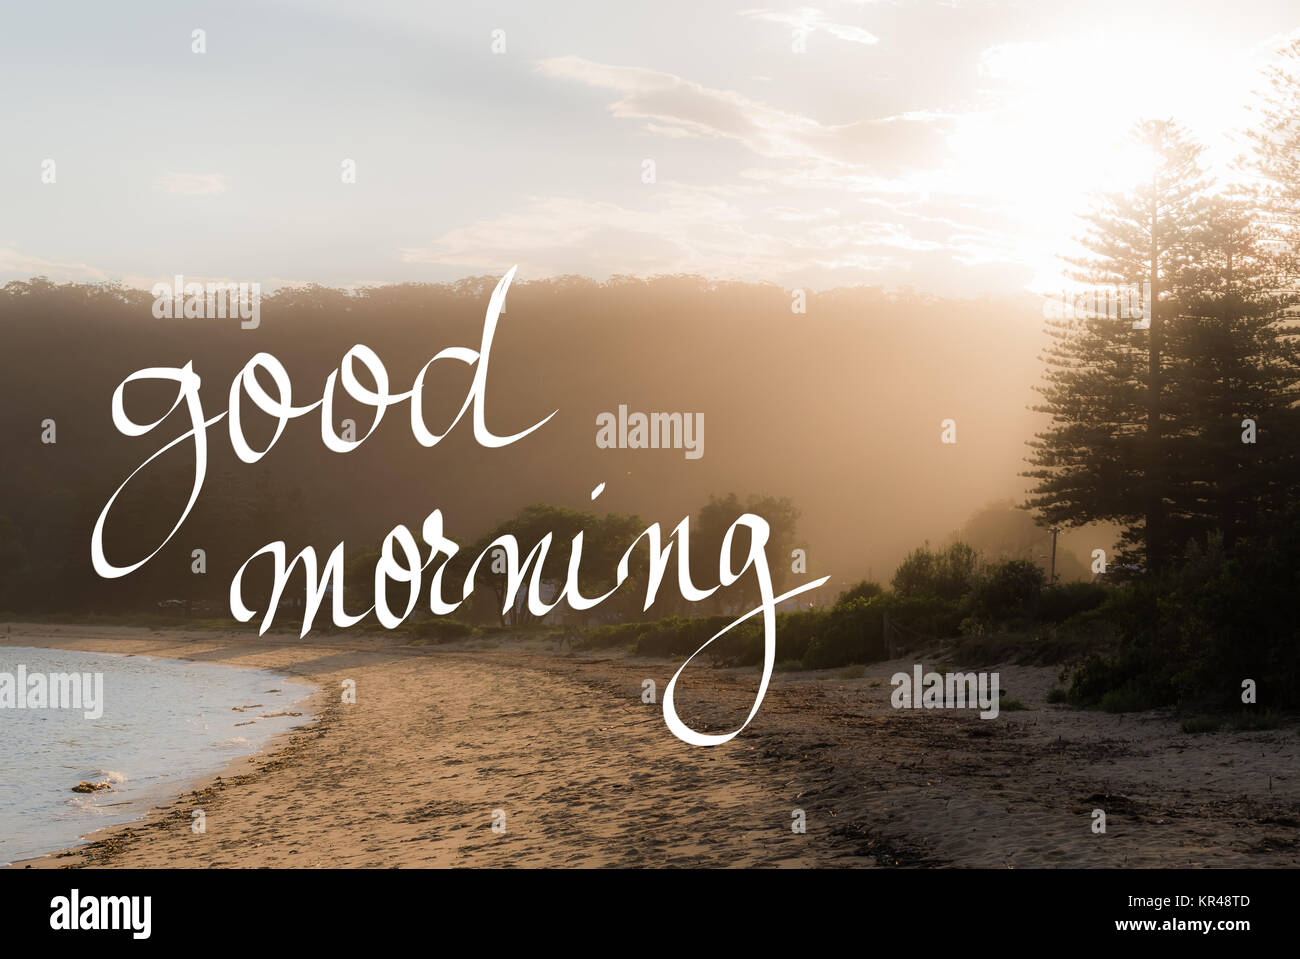 Good Morning Greeting Stock Photos Good Morning Greeting Stock